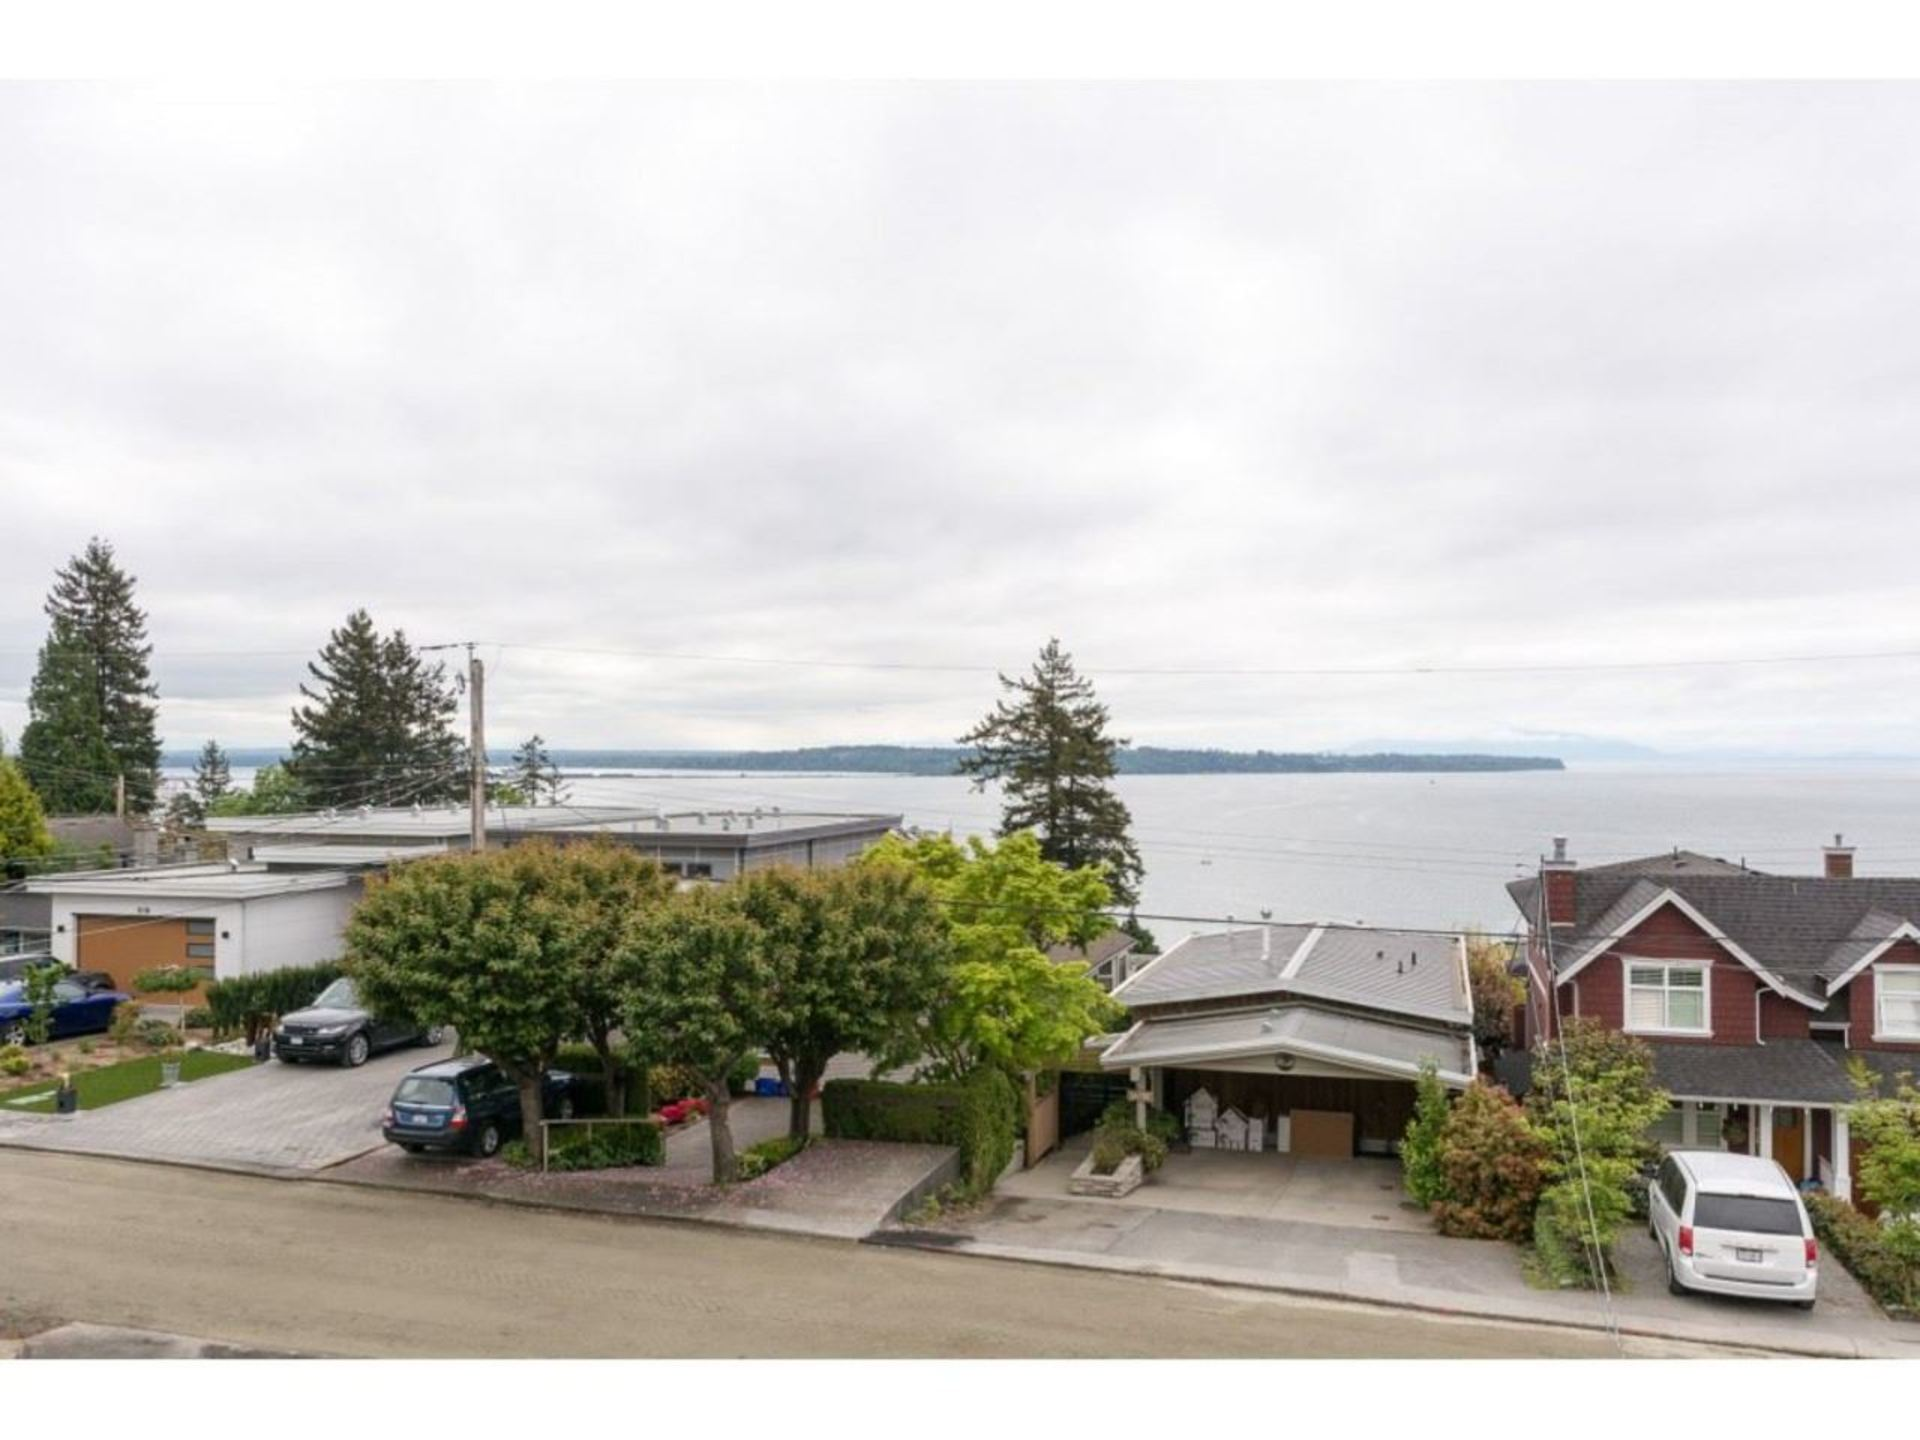 14763-thrift-avenue-white-rock-south-surrey-white-rock-15 at 14763 Thrift Avenue, White Rock, South Surrey White Rock